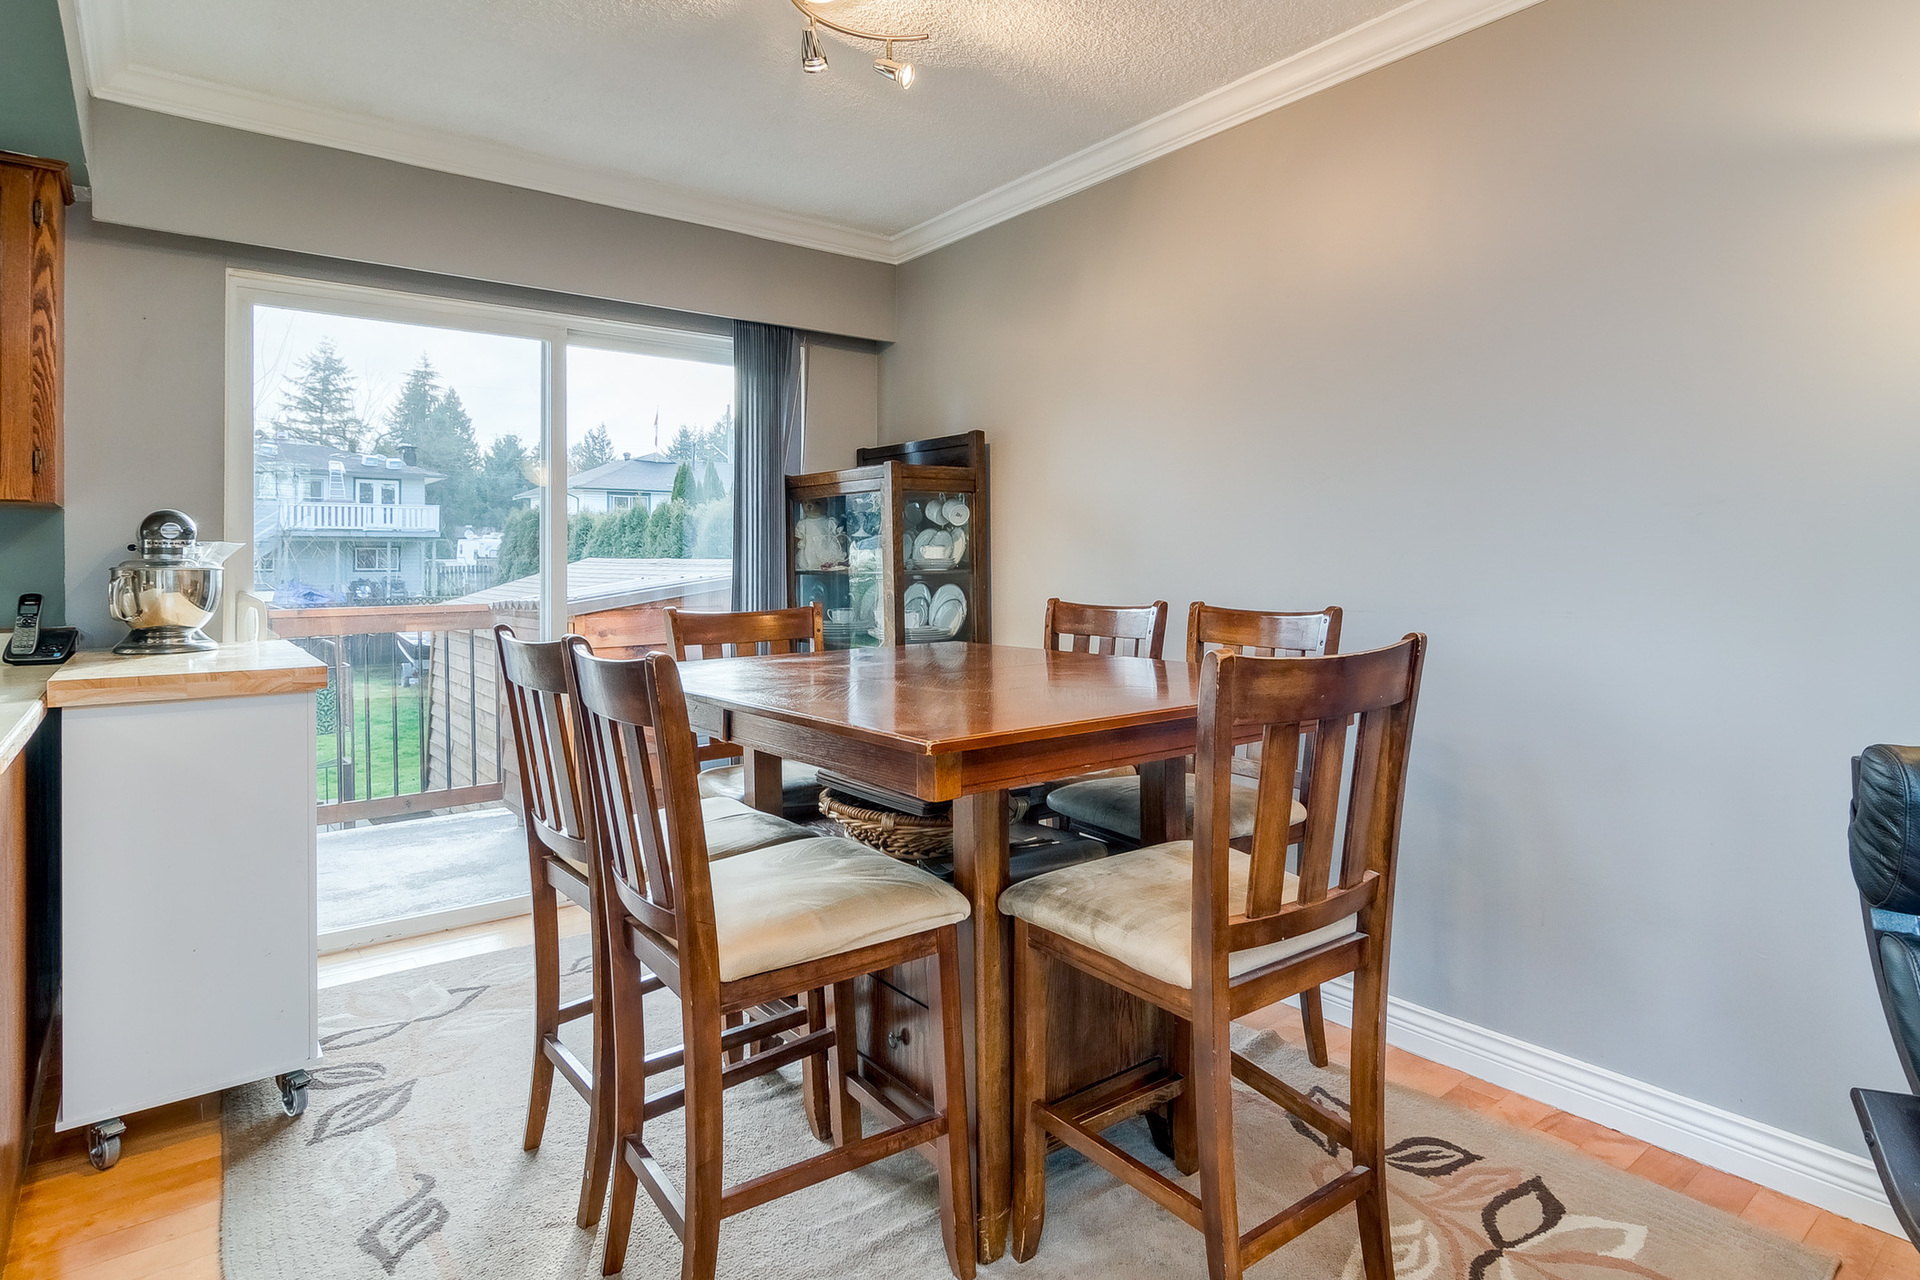 38072_8 at 21682 125 Avenue, West Central, Maple Ridge